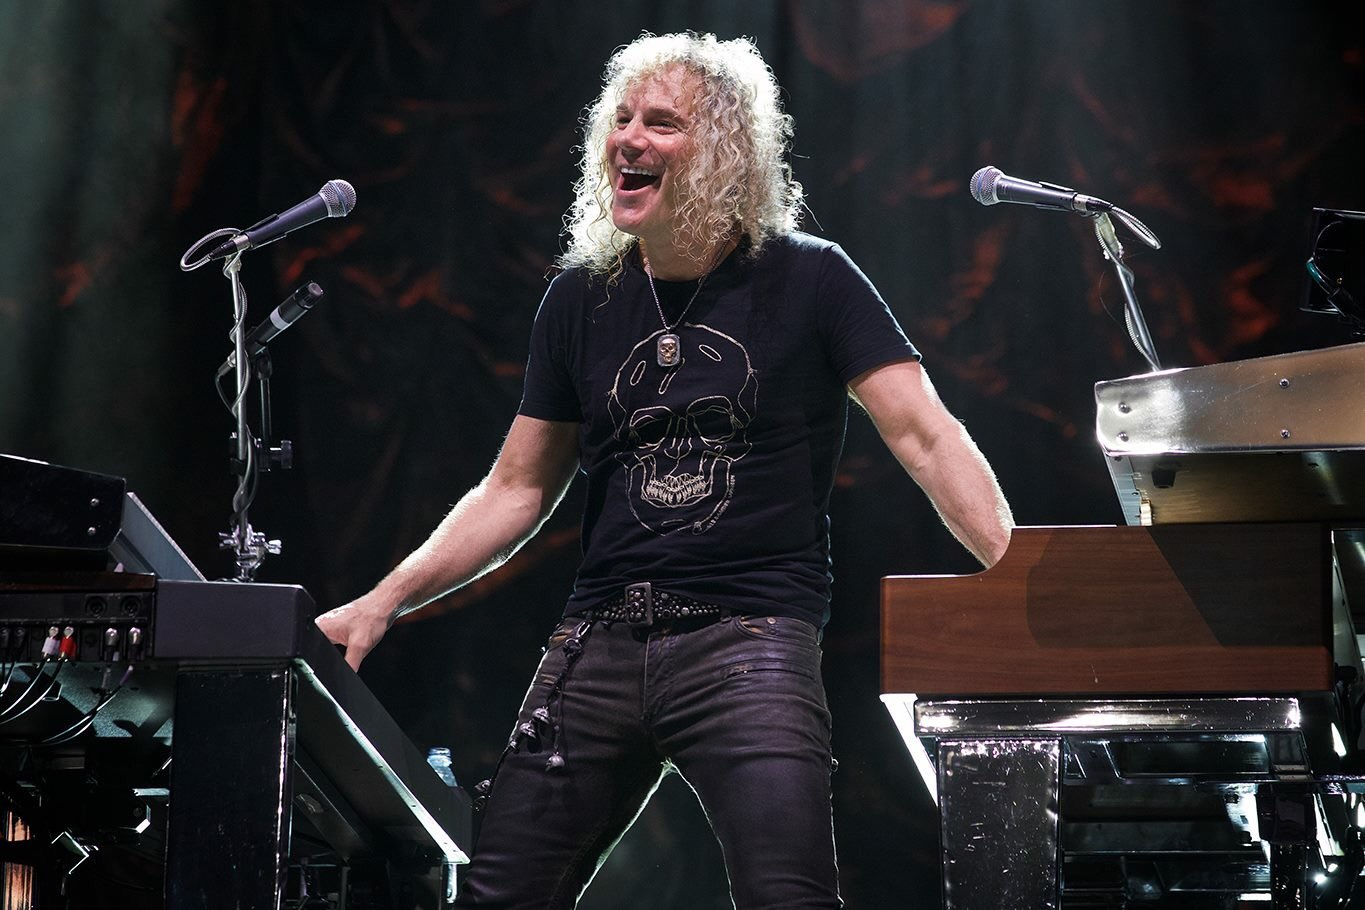 Please join us in wishing @dbdavidbryan a very happy birthday �� https://t.co/fHk5XLy4ZH